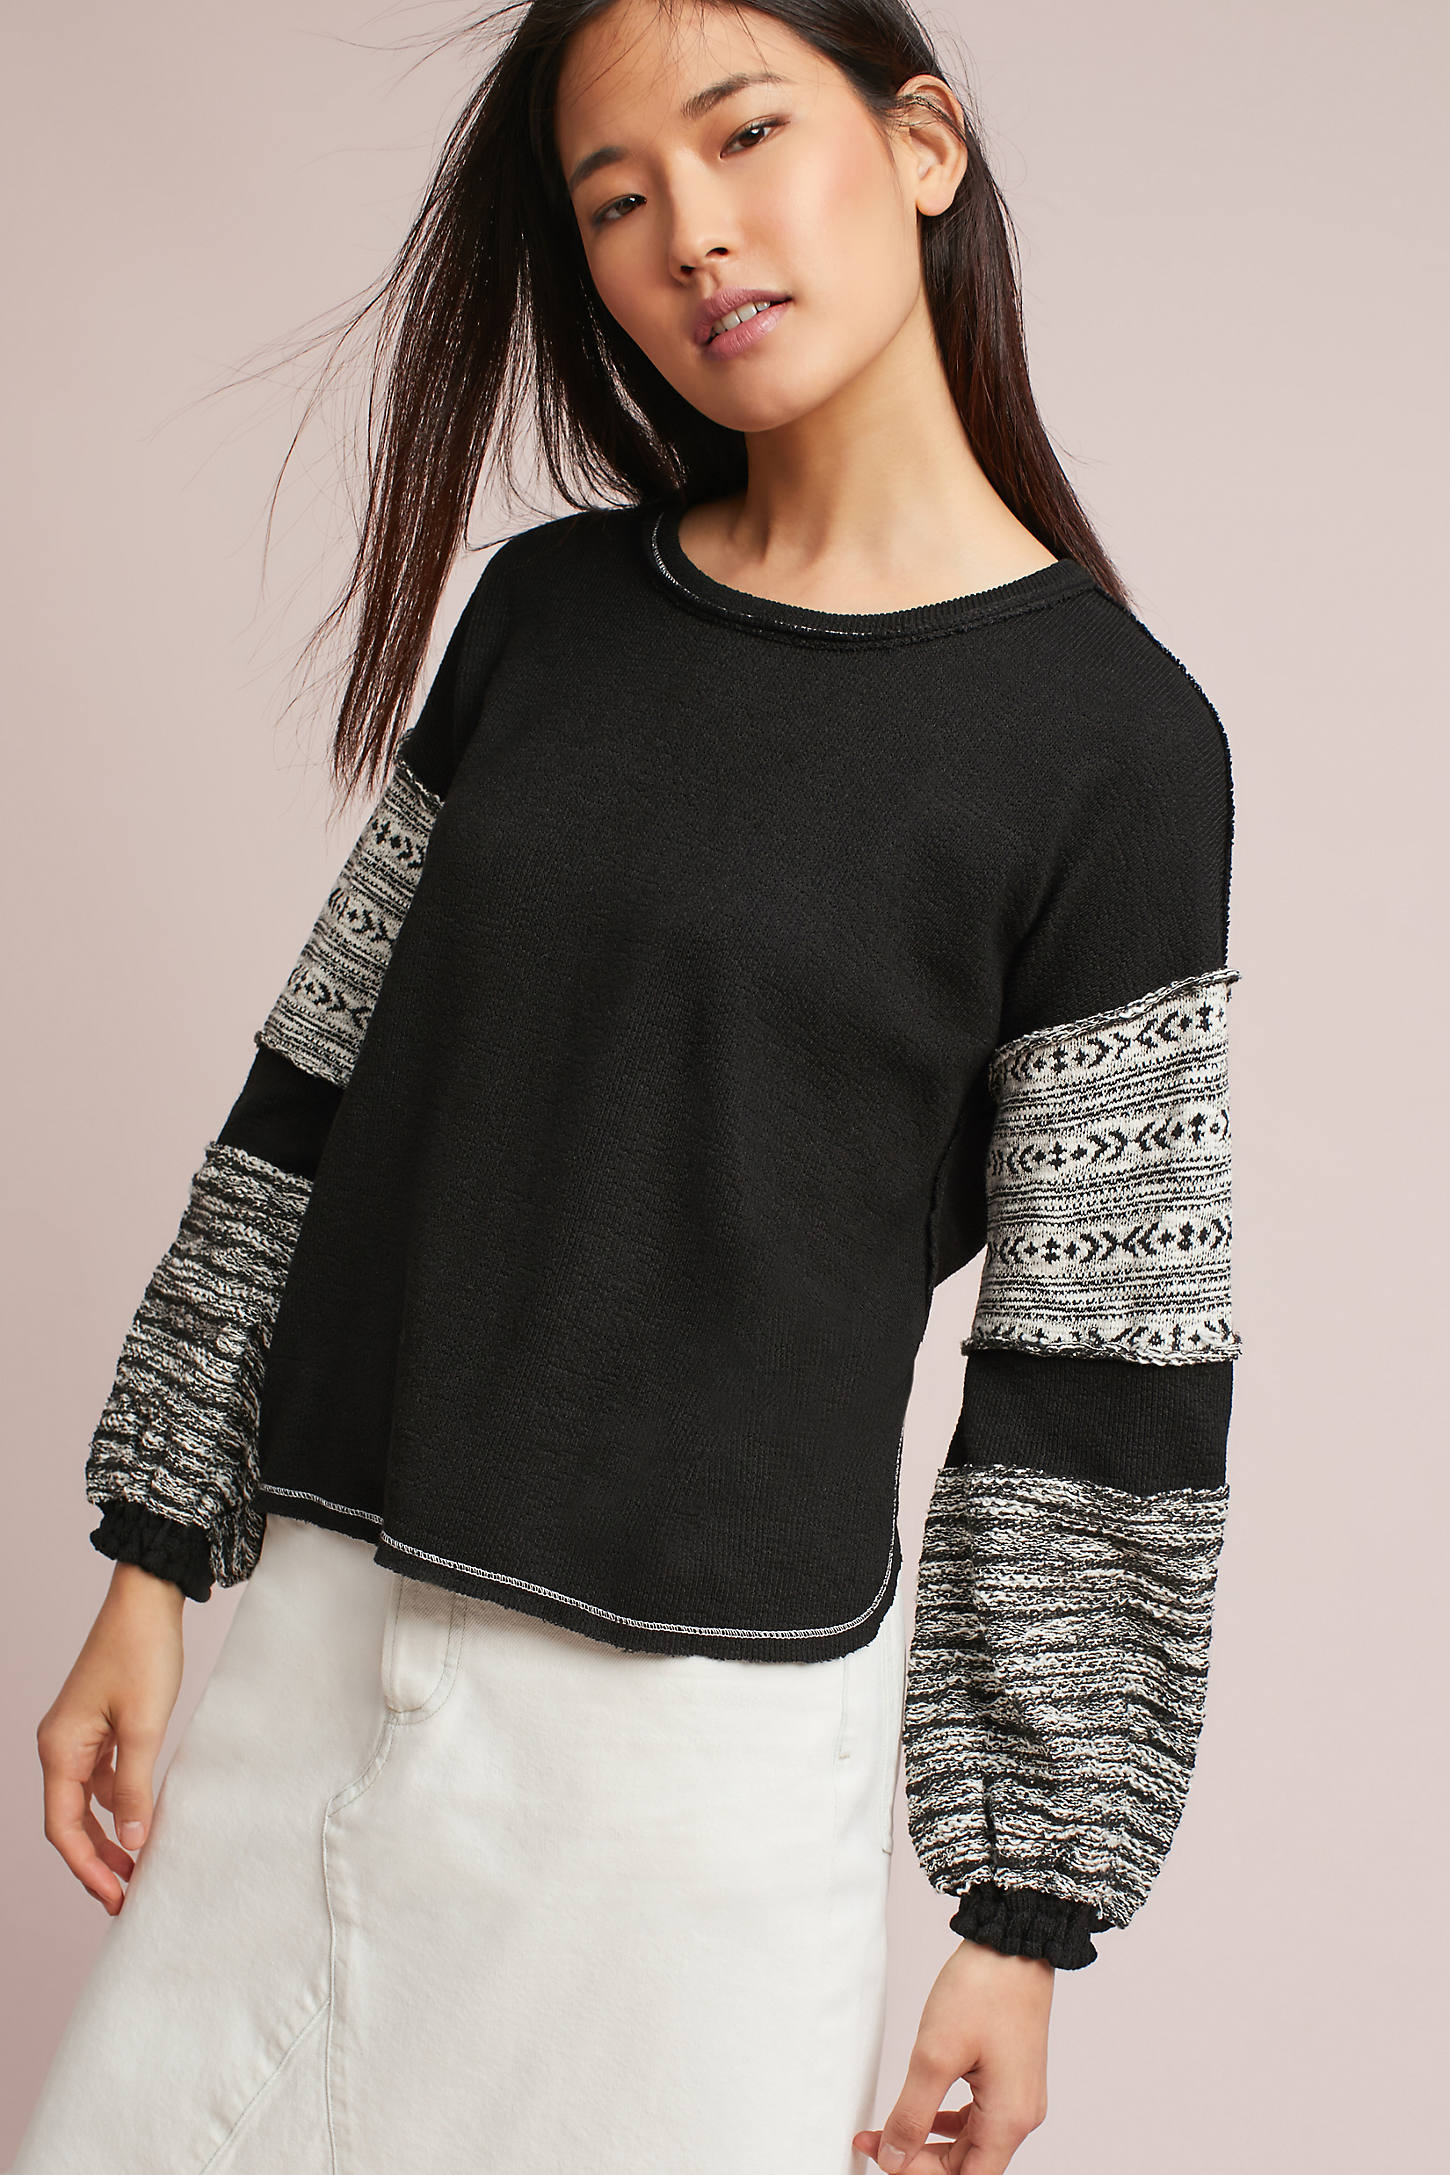 Wind Chime Pullover